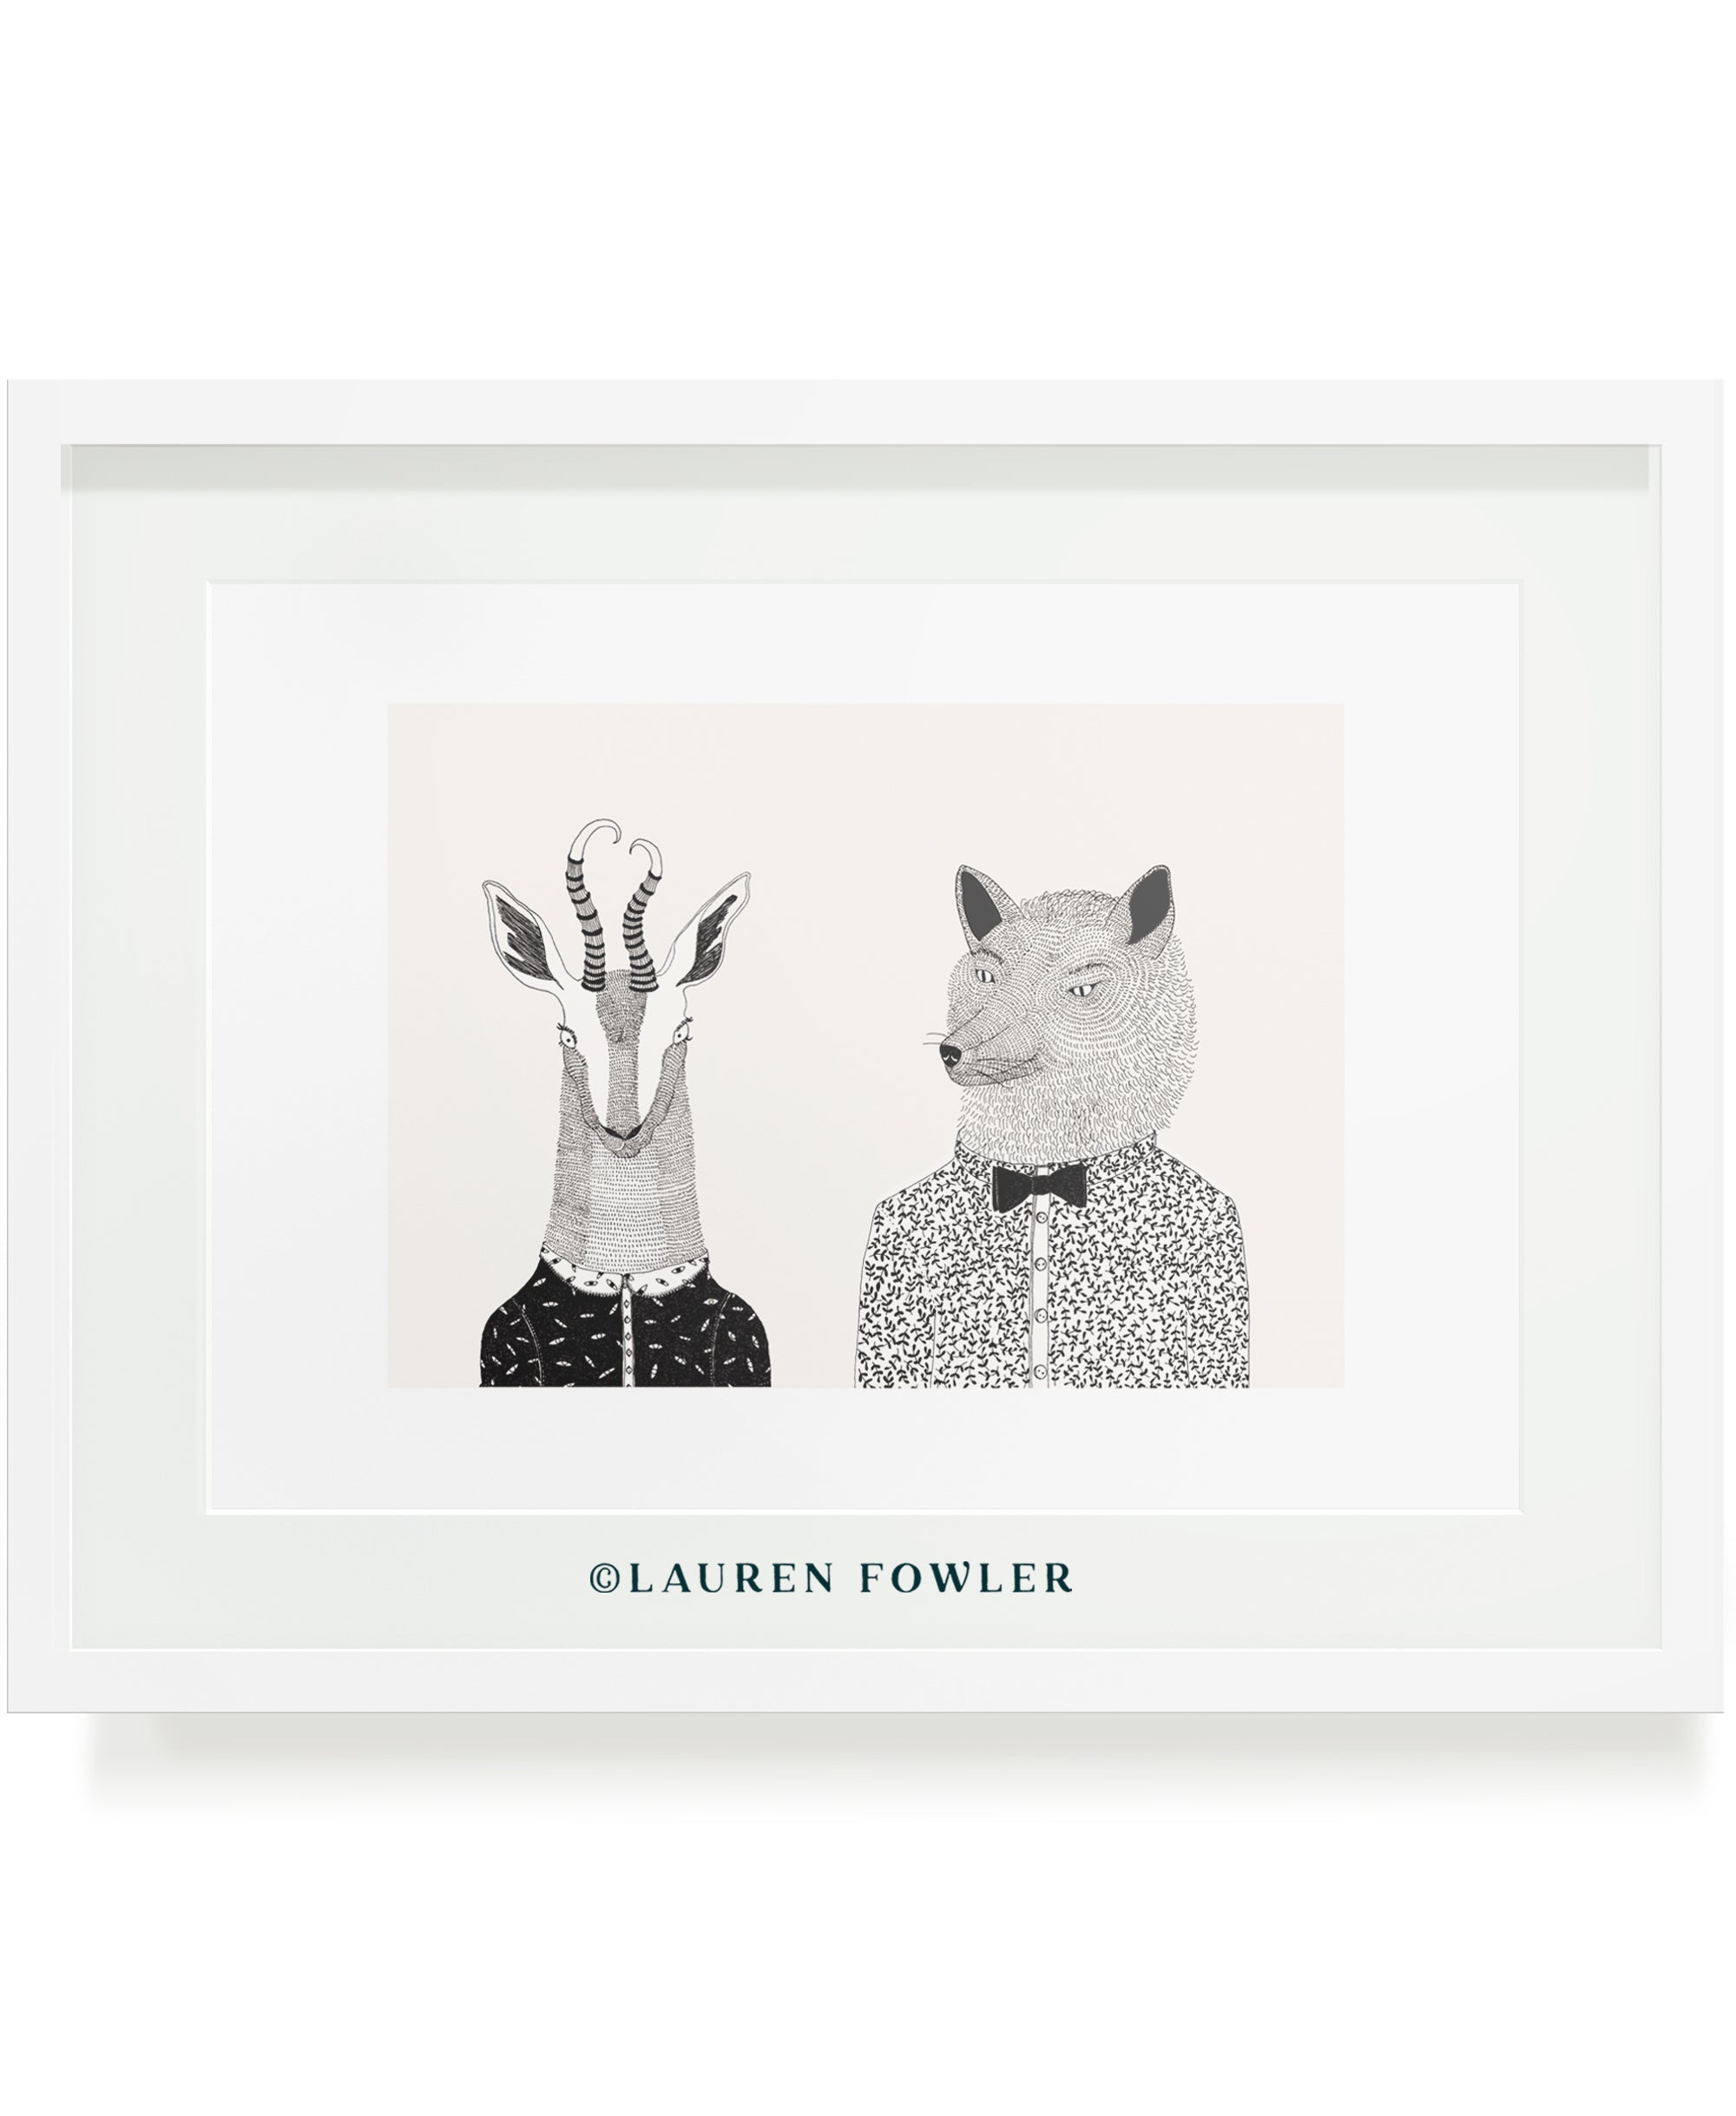 Bokkie and Wolf people as animals illustrated artwork by Lauren Fowler